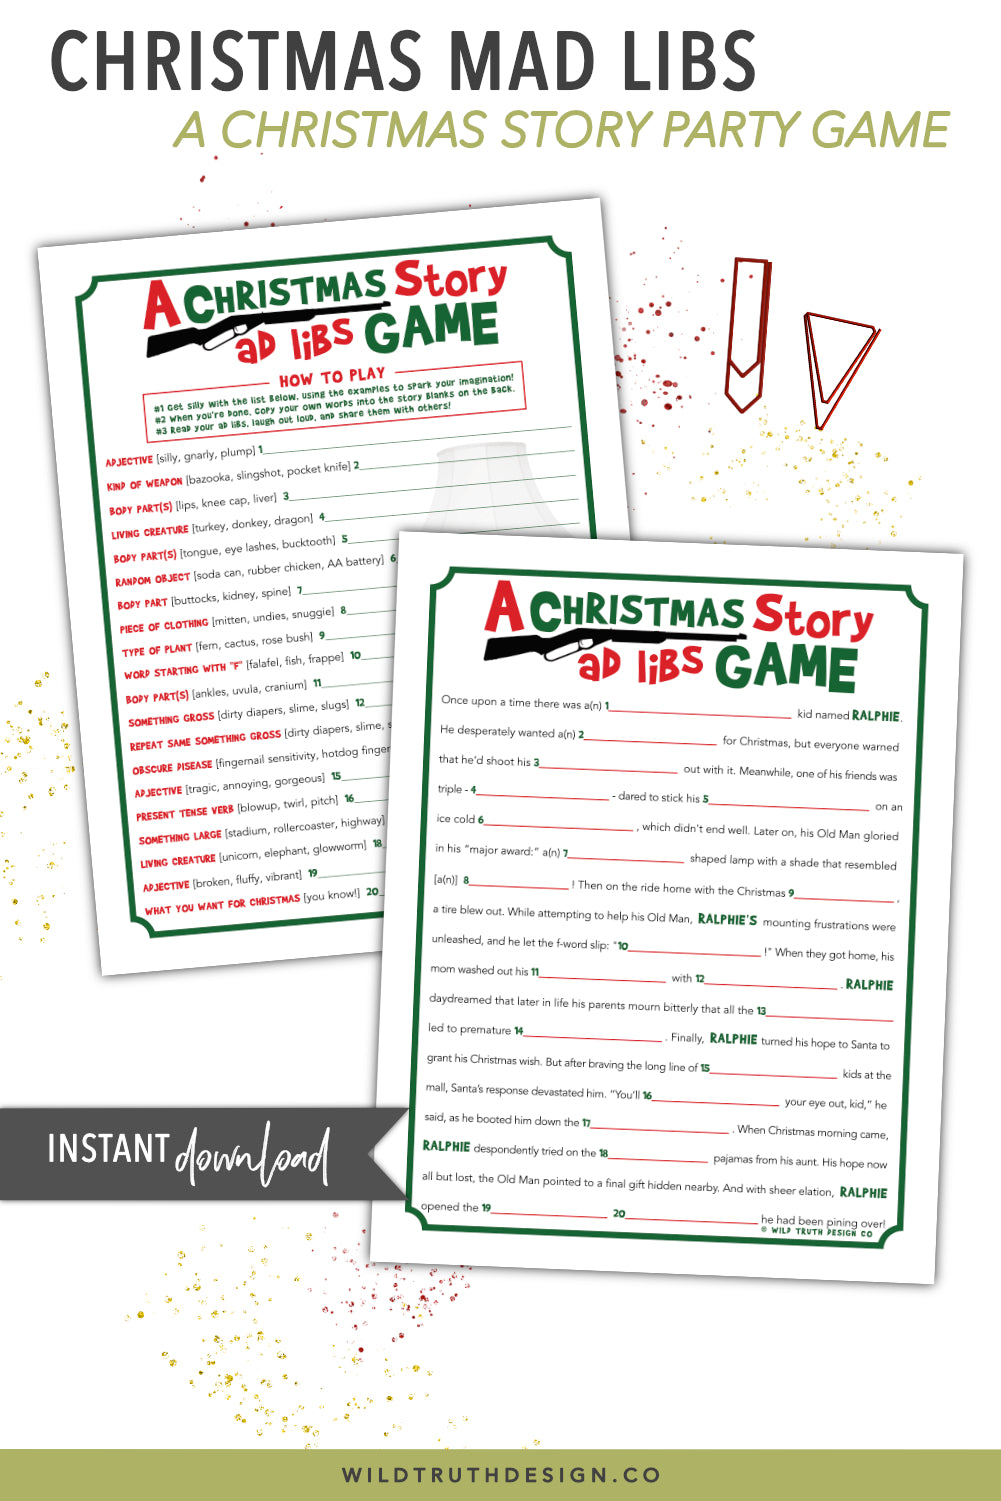 Christmas Mad Libs - A Christmas Story Party Game